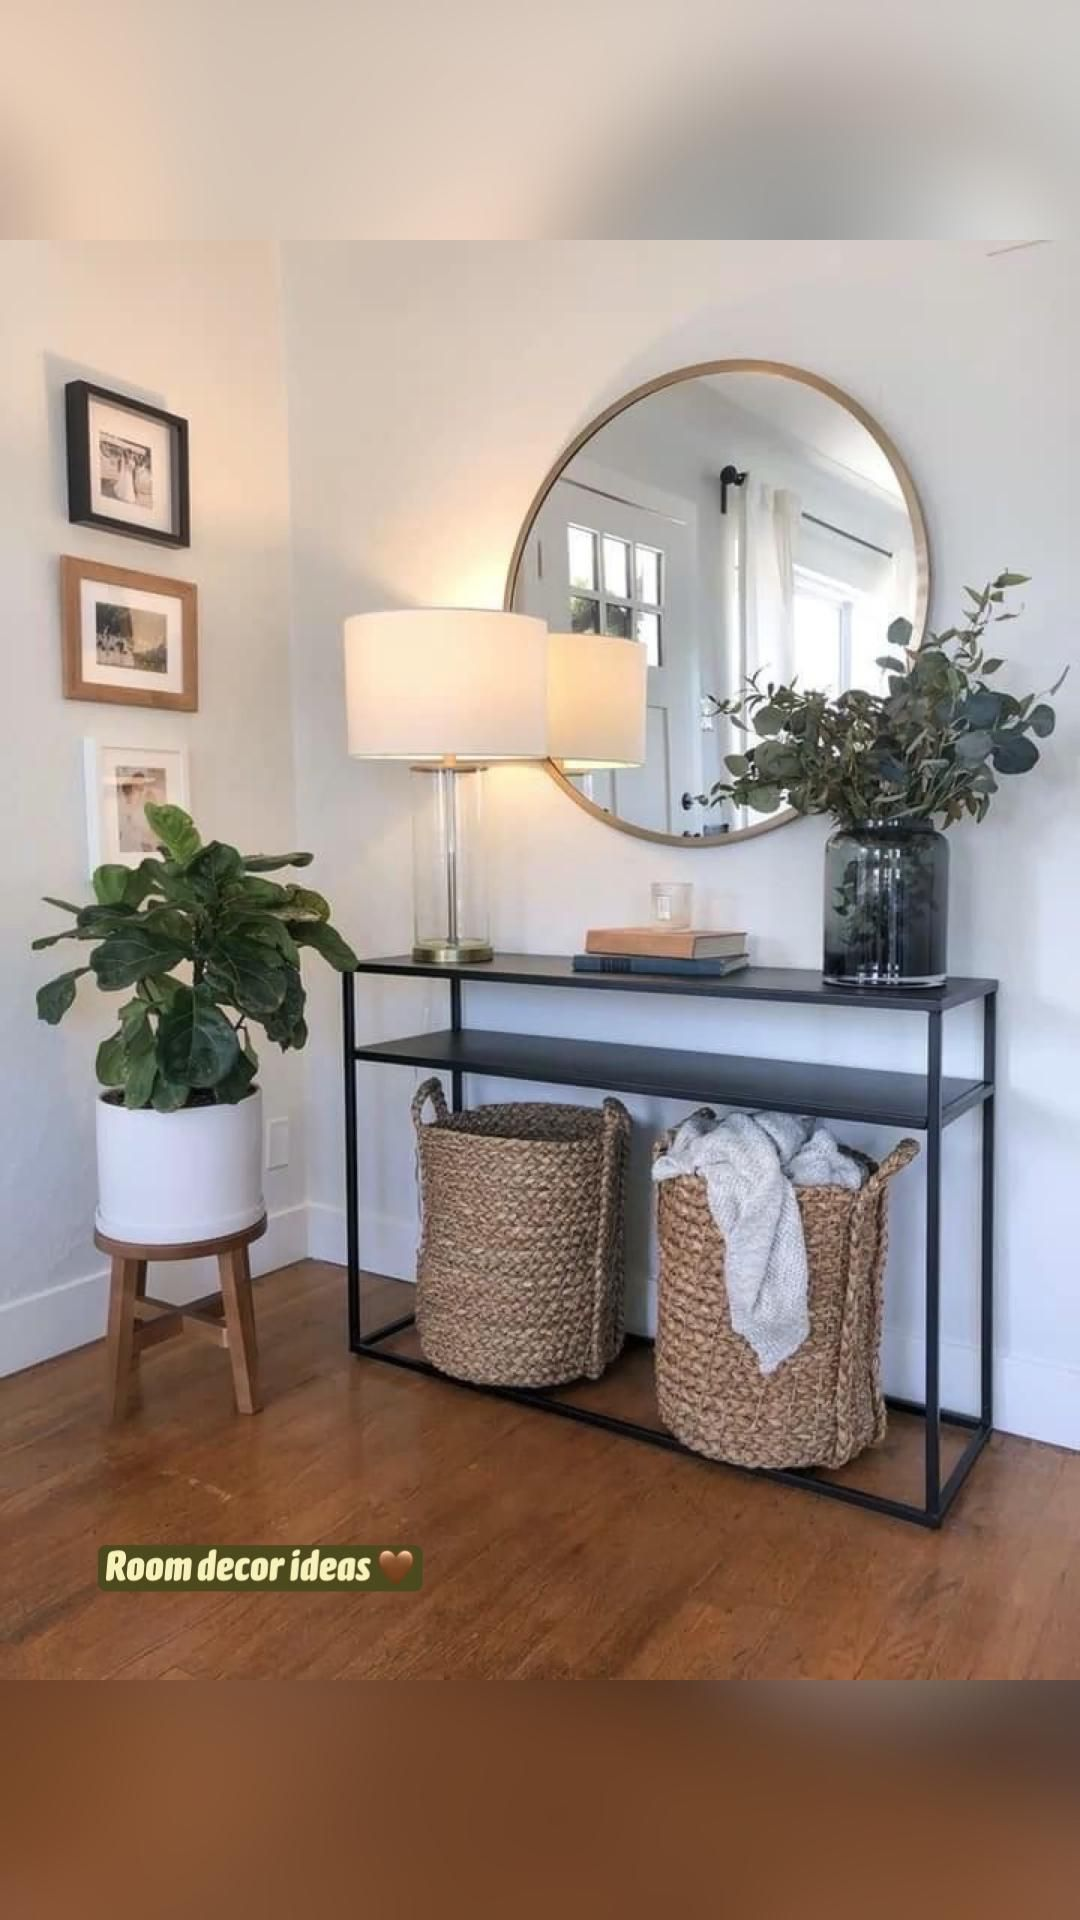 Ideas for Decorating a Large Wall